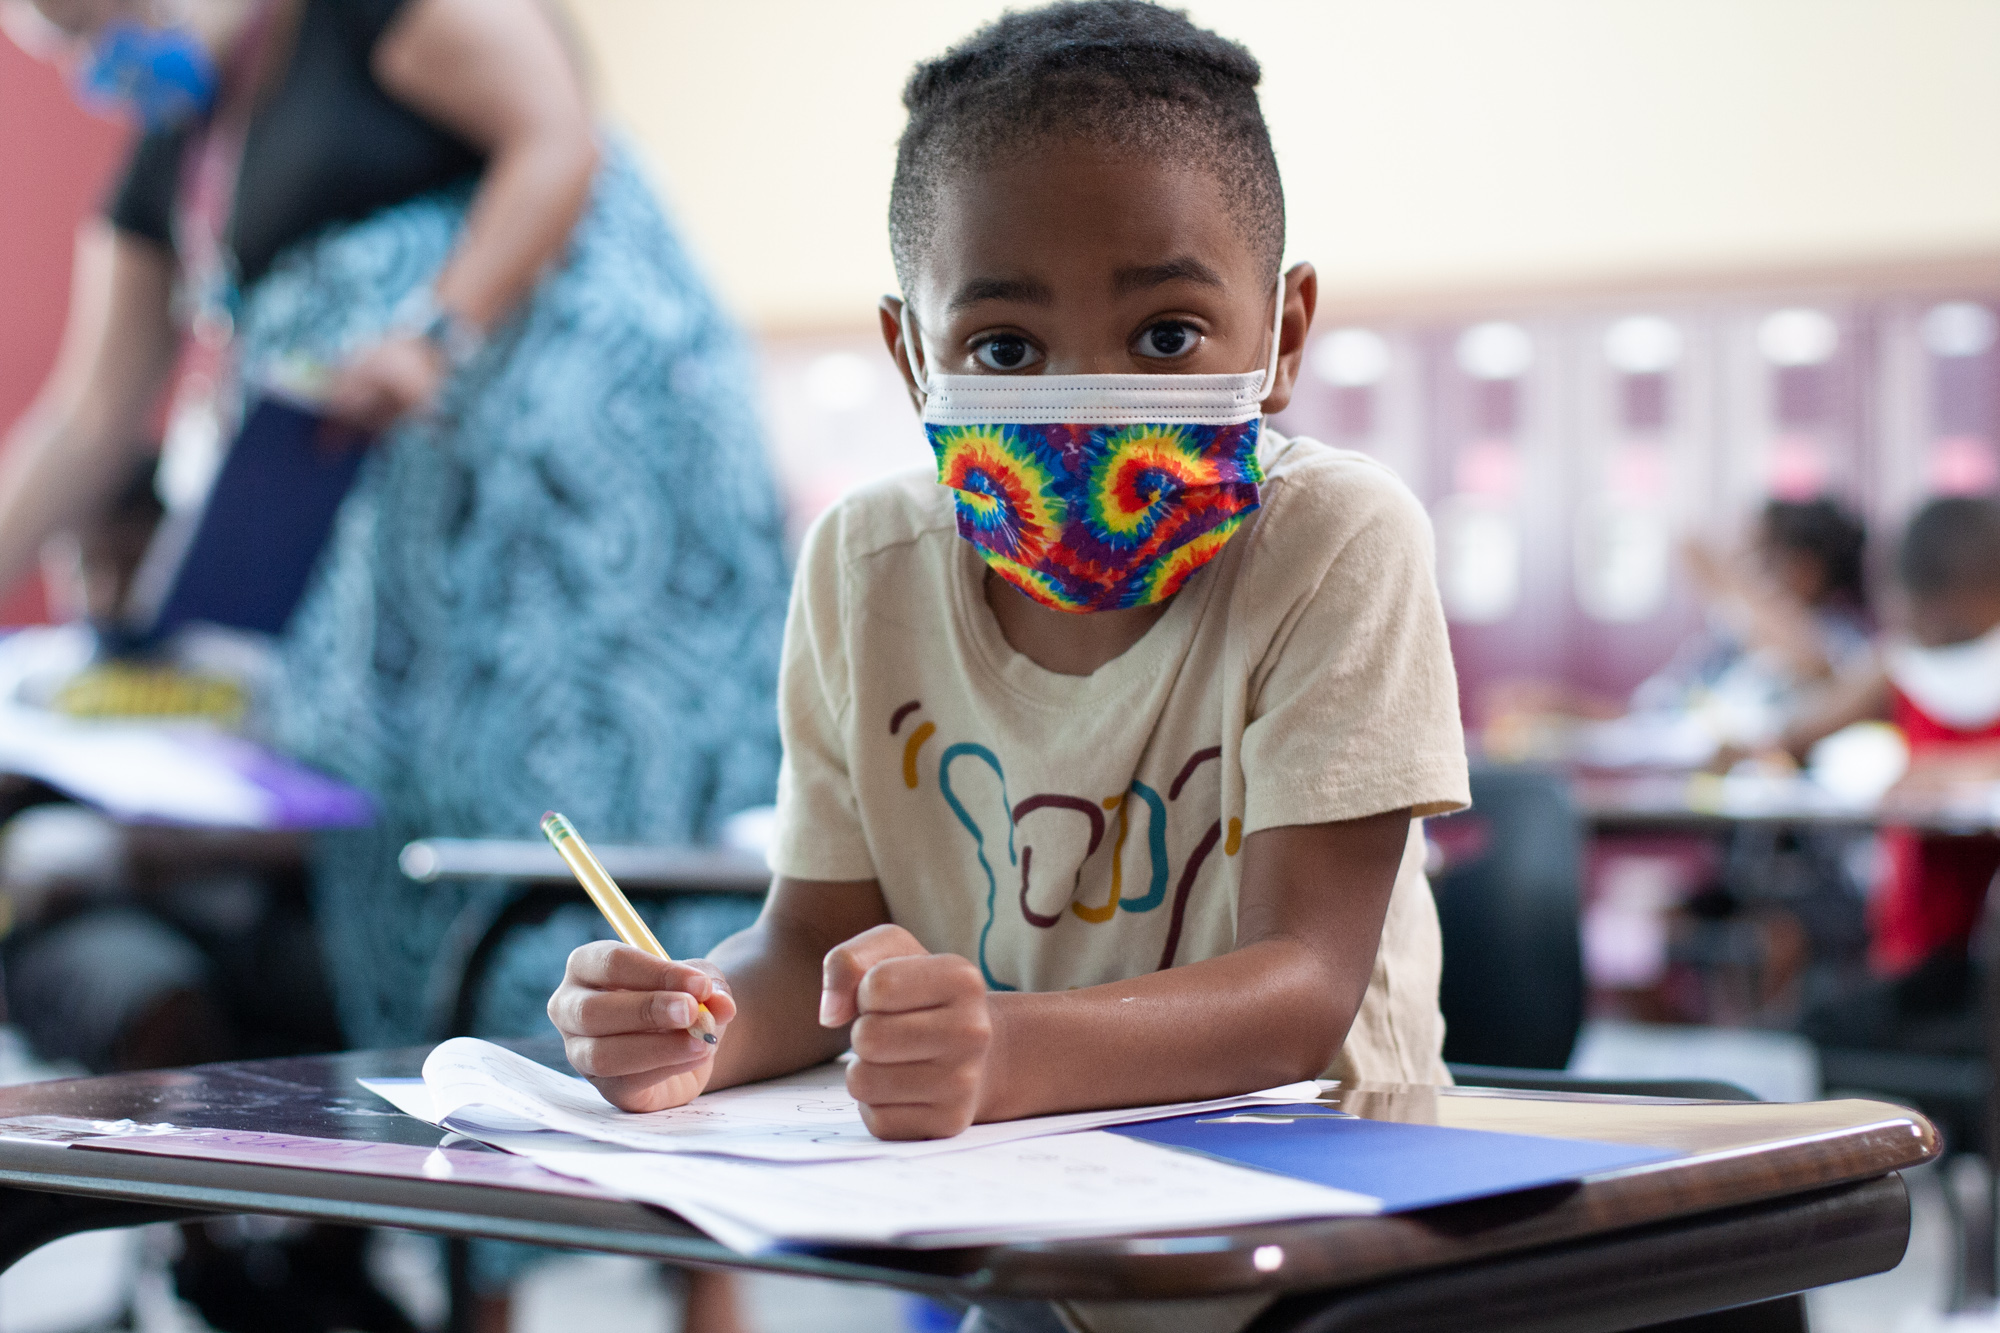 A young boy in a beige shirt with a tie-dye mask looks up at the camera in the middle of writing on a worksheet with a pencil as a teacher helps a student in the background